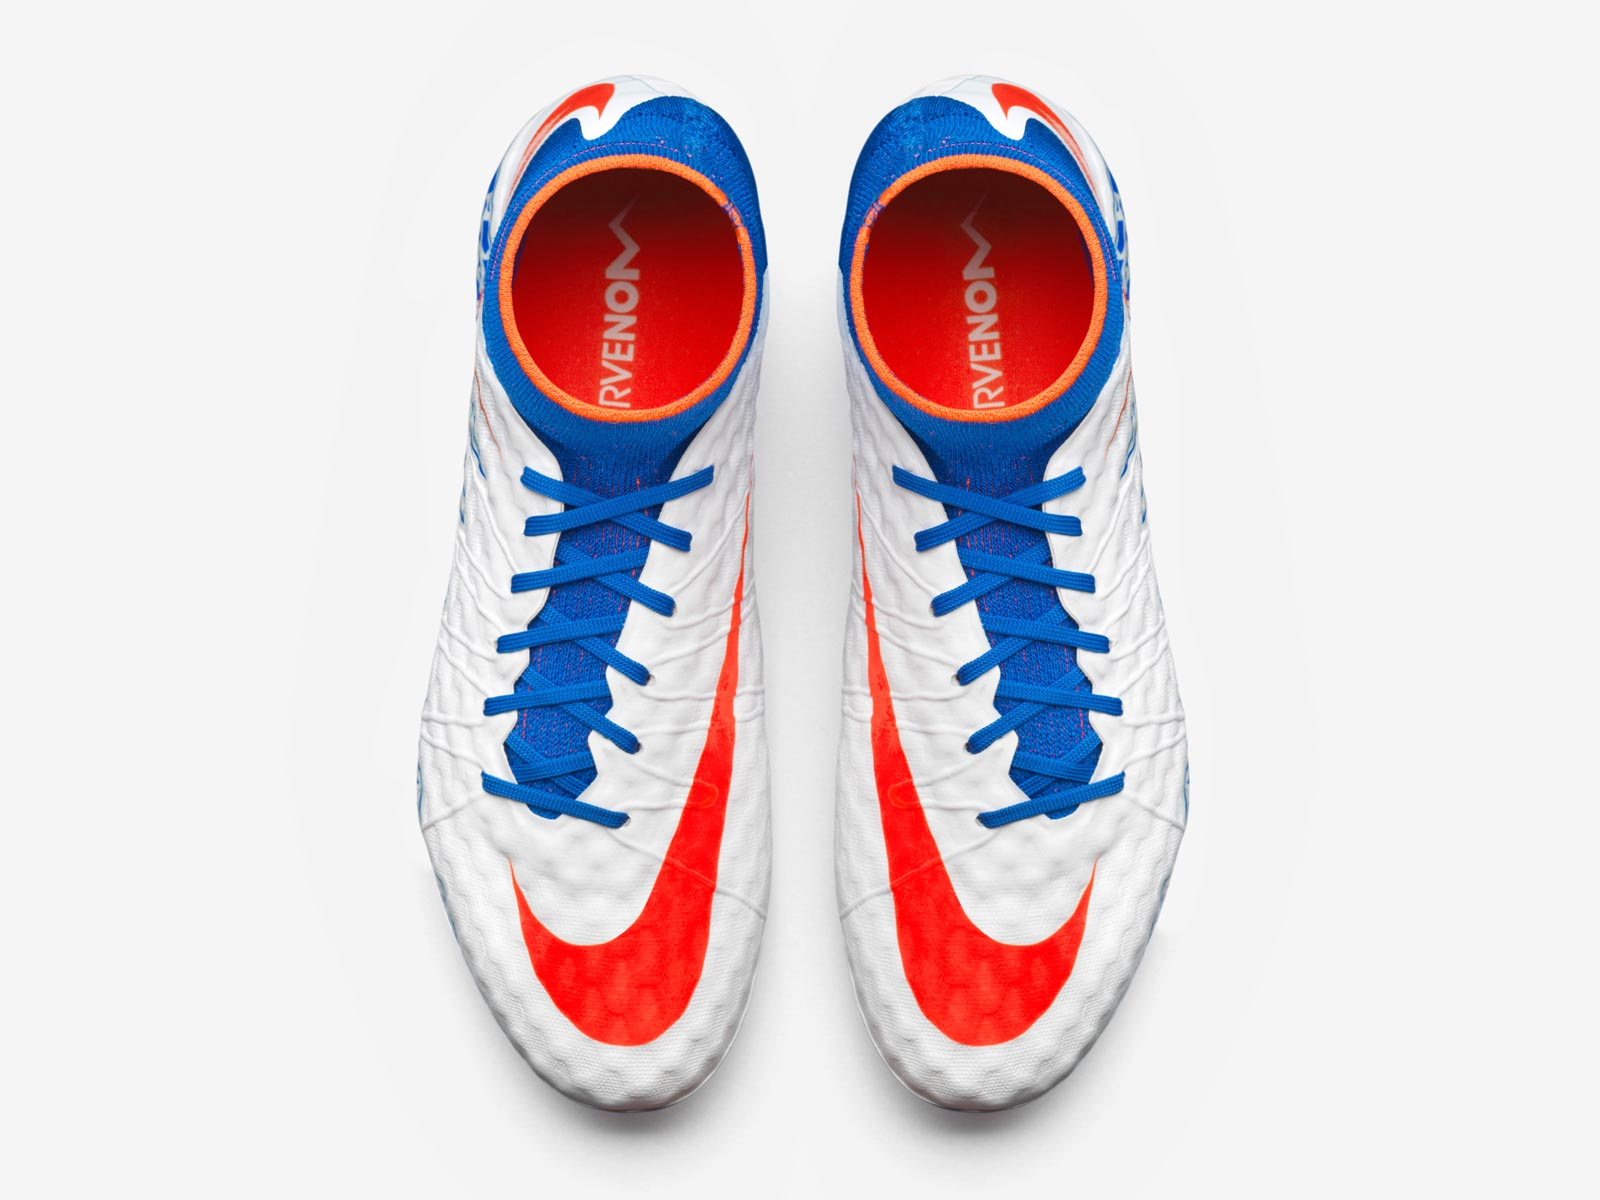 nike hypervenom phantom ii 2016 olympics boots revealed. Black Bedroom Furniture Sets. Home Design Ideas